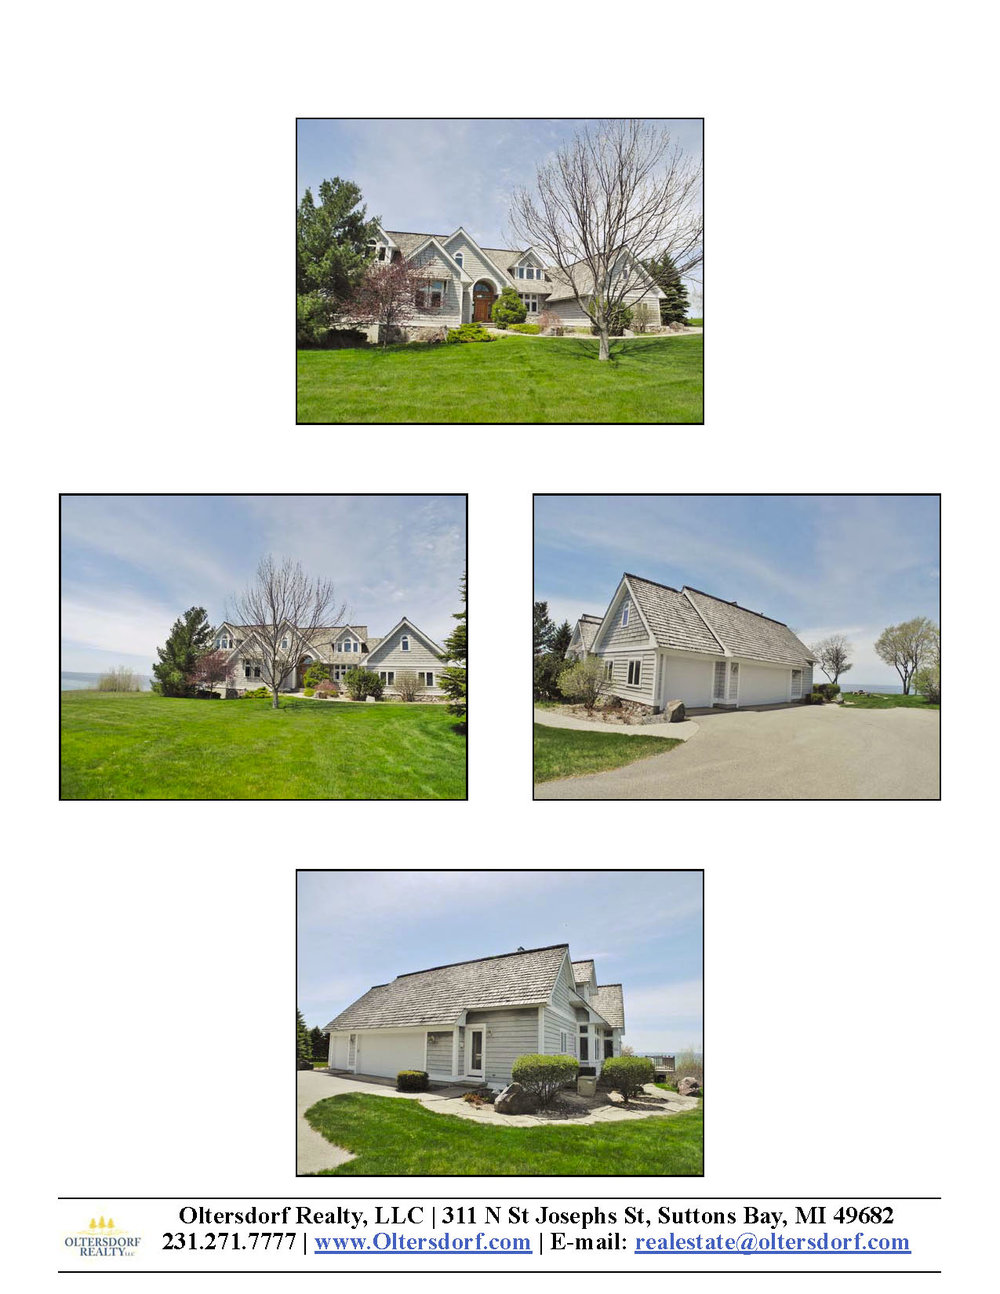 11945 N Foxview Drive, Northport, MI –Lake Michigan Views & Shared Access - Oltersdorf Realty LLC Marketing Packet (3).jpg